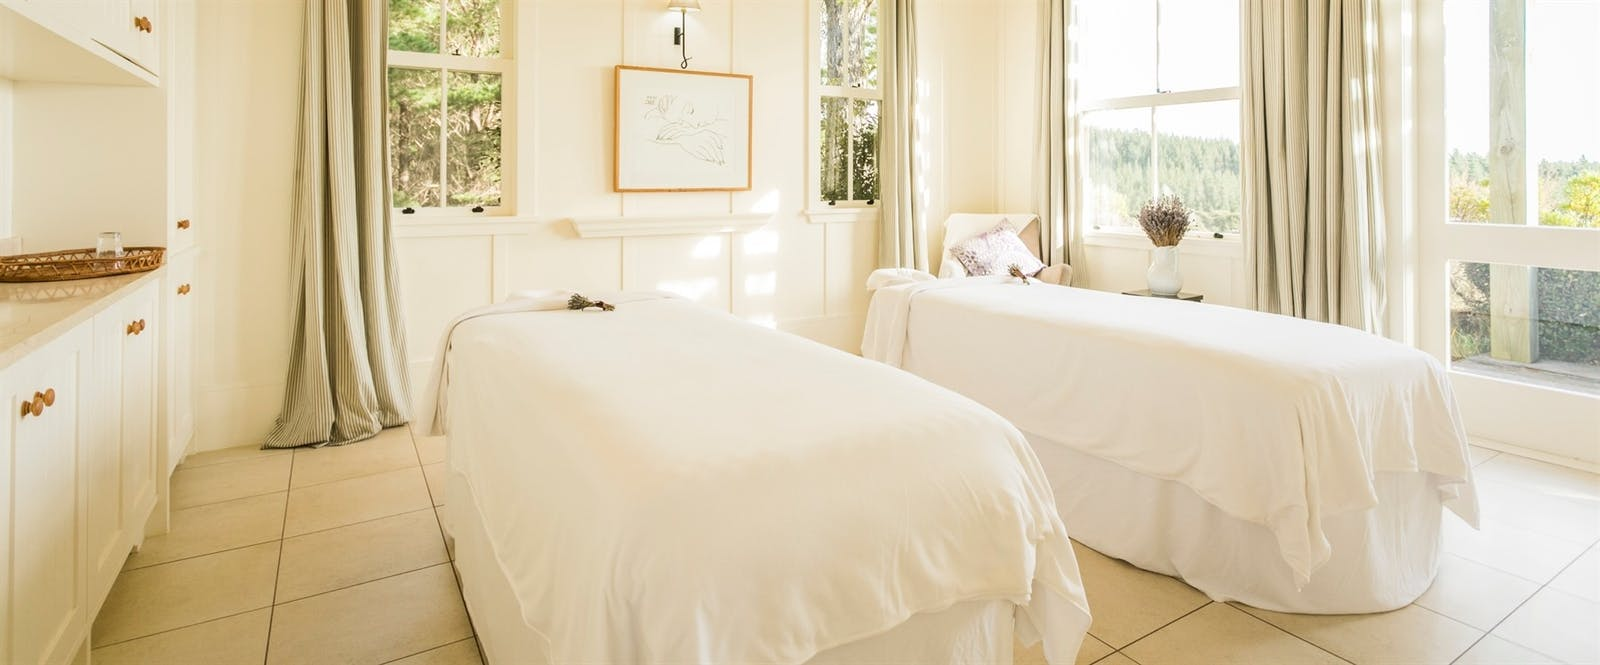 Spa Couples Treatment Room at The Farm at Cape Kidnappers, Hawke's Bay